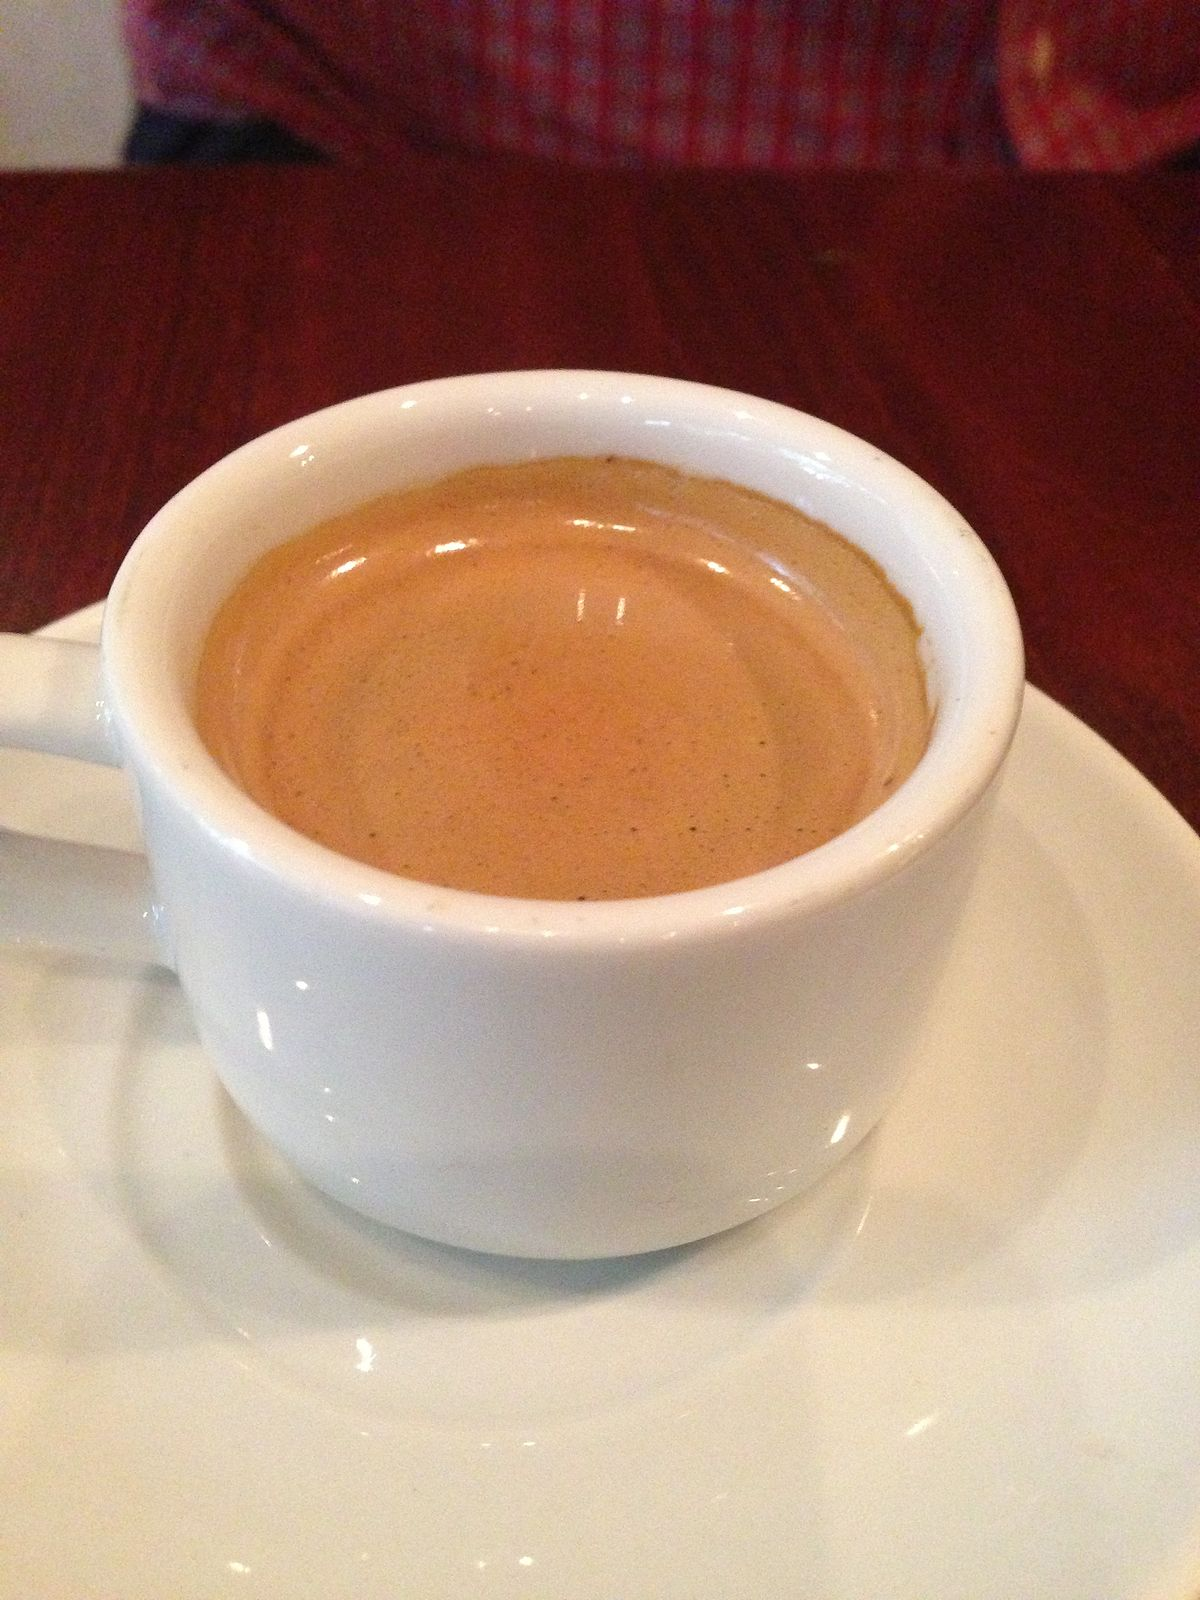 What The Heck Is An Espresso Drink?